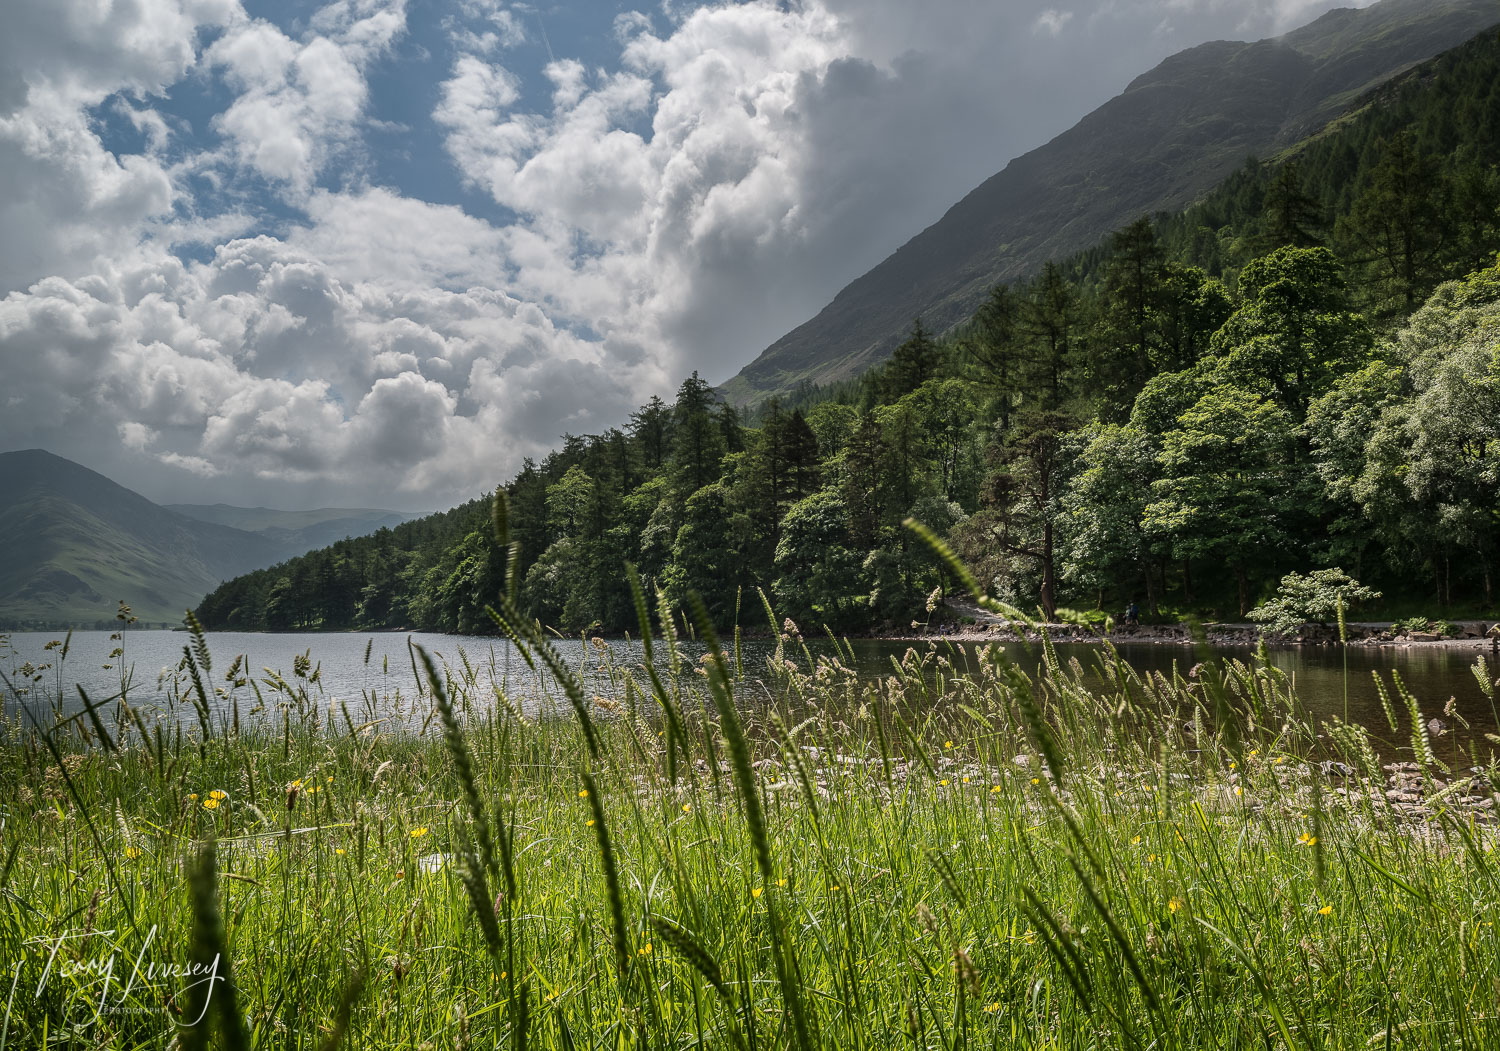 Taken through the grasses of lake Buttermere in the Lake District.